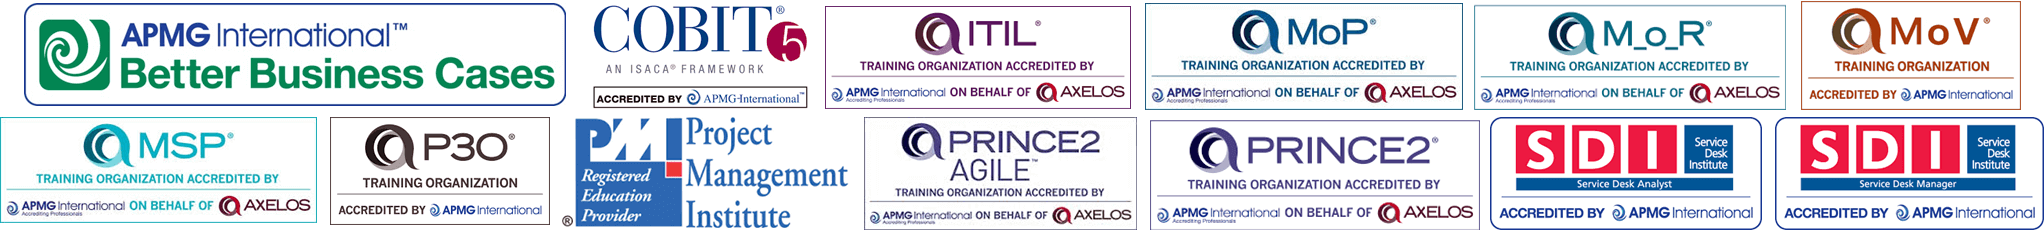 prince2 practitioner sample exam questions and answers 2017